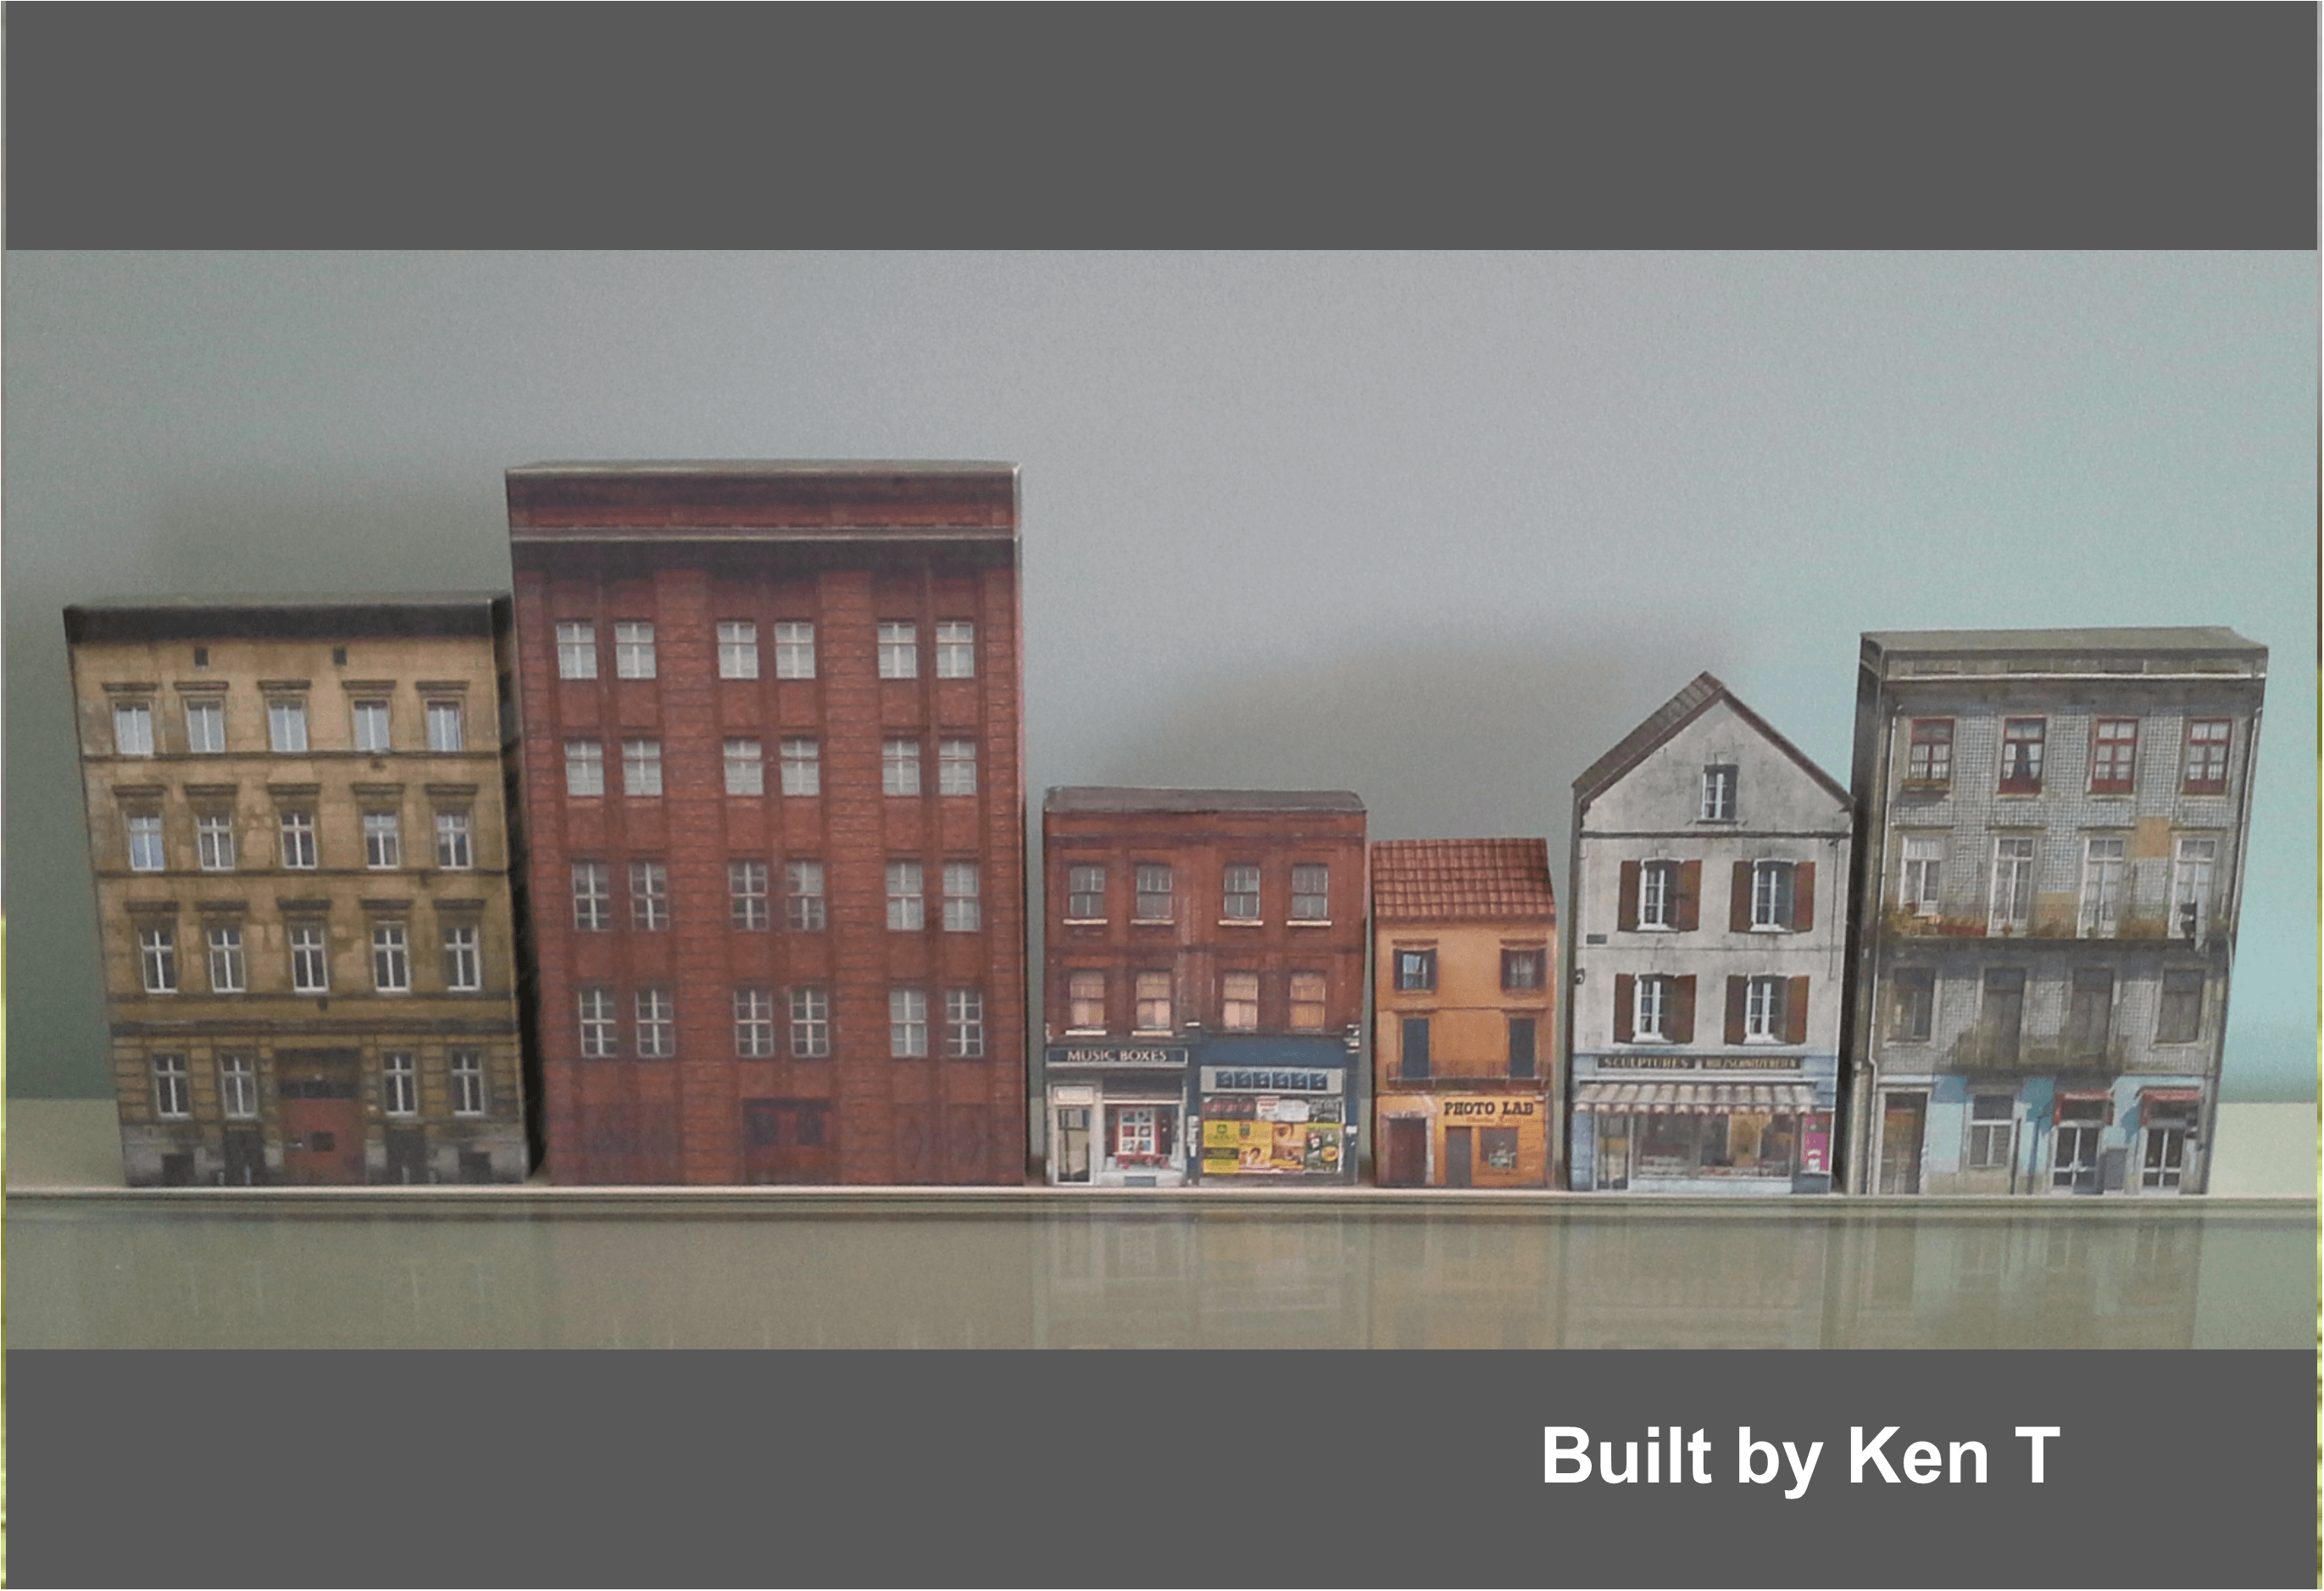 city-street-scene-scale-models-tall-buildings